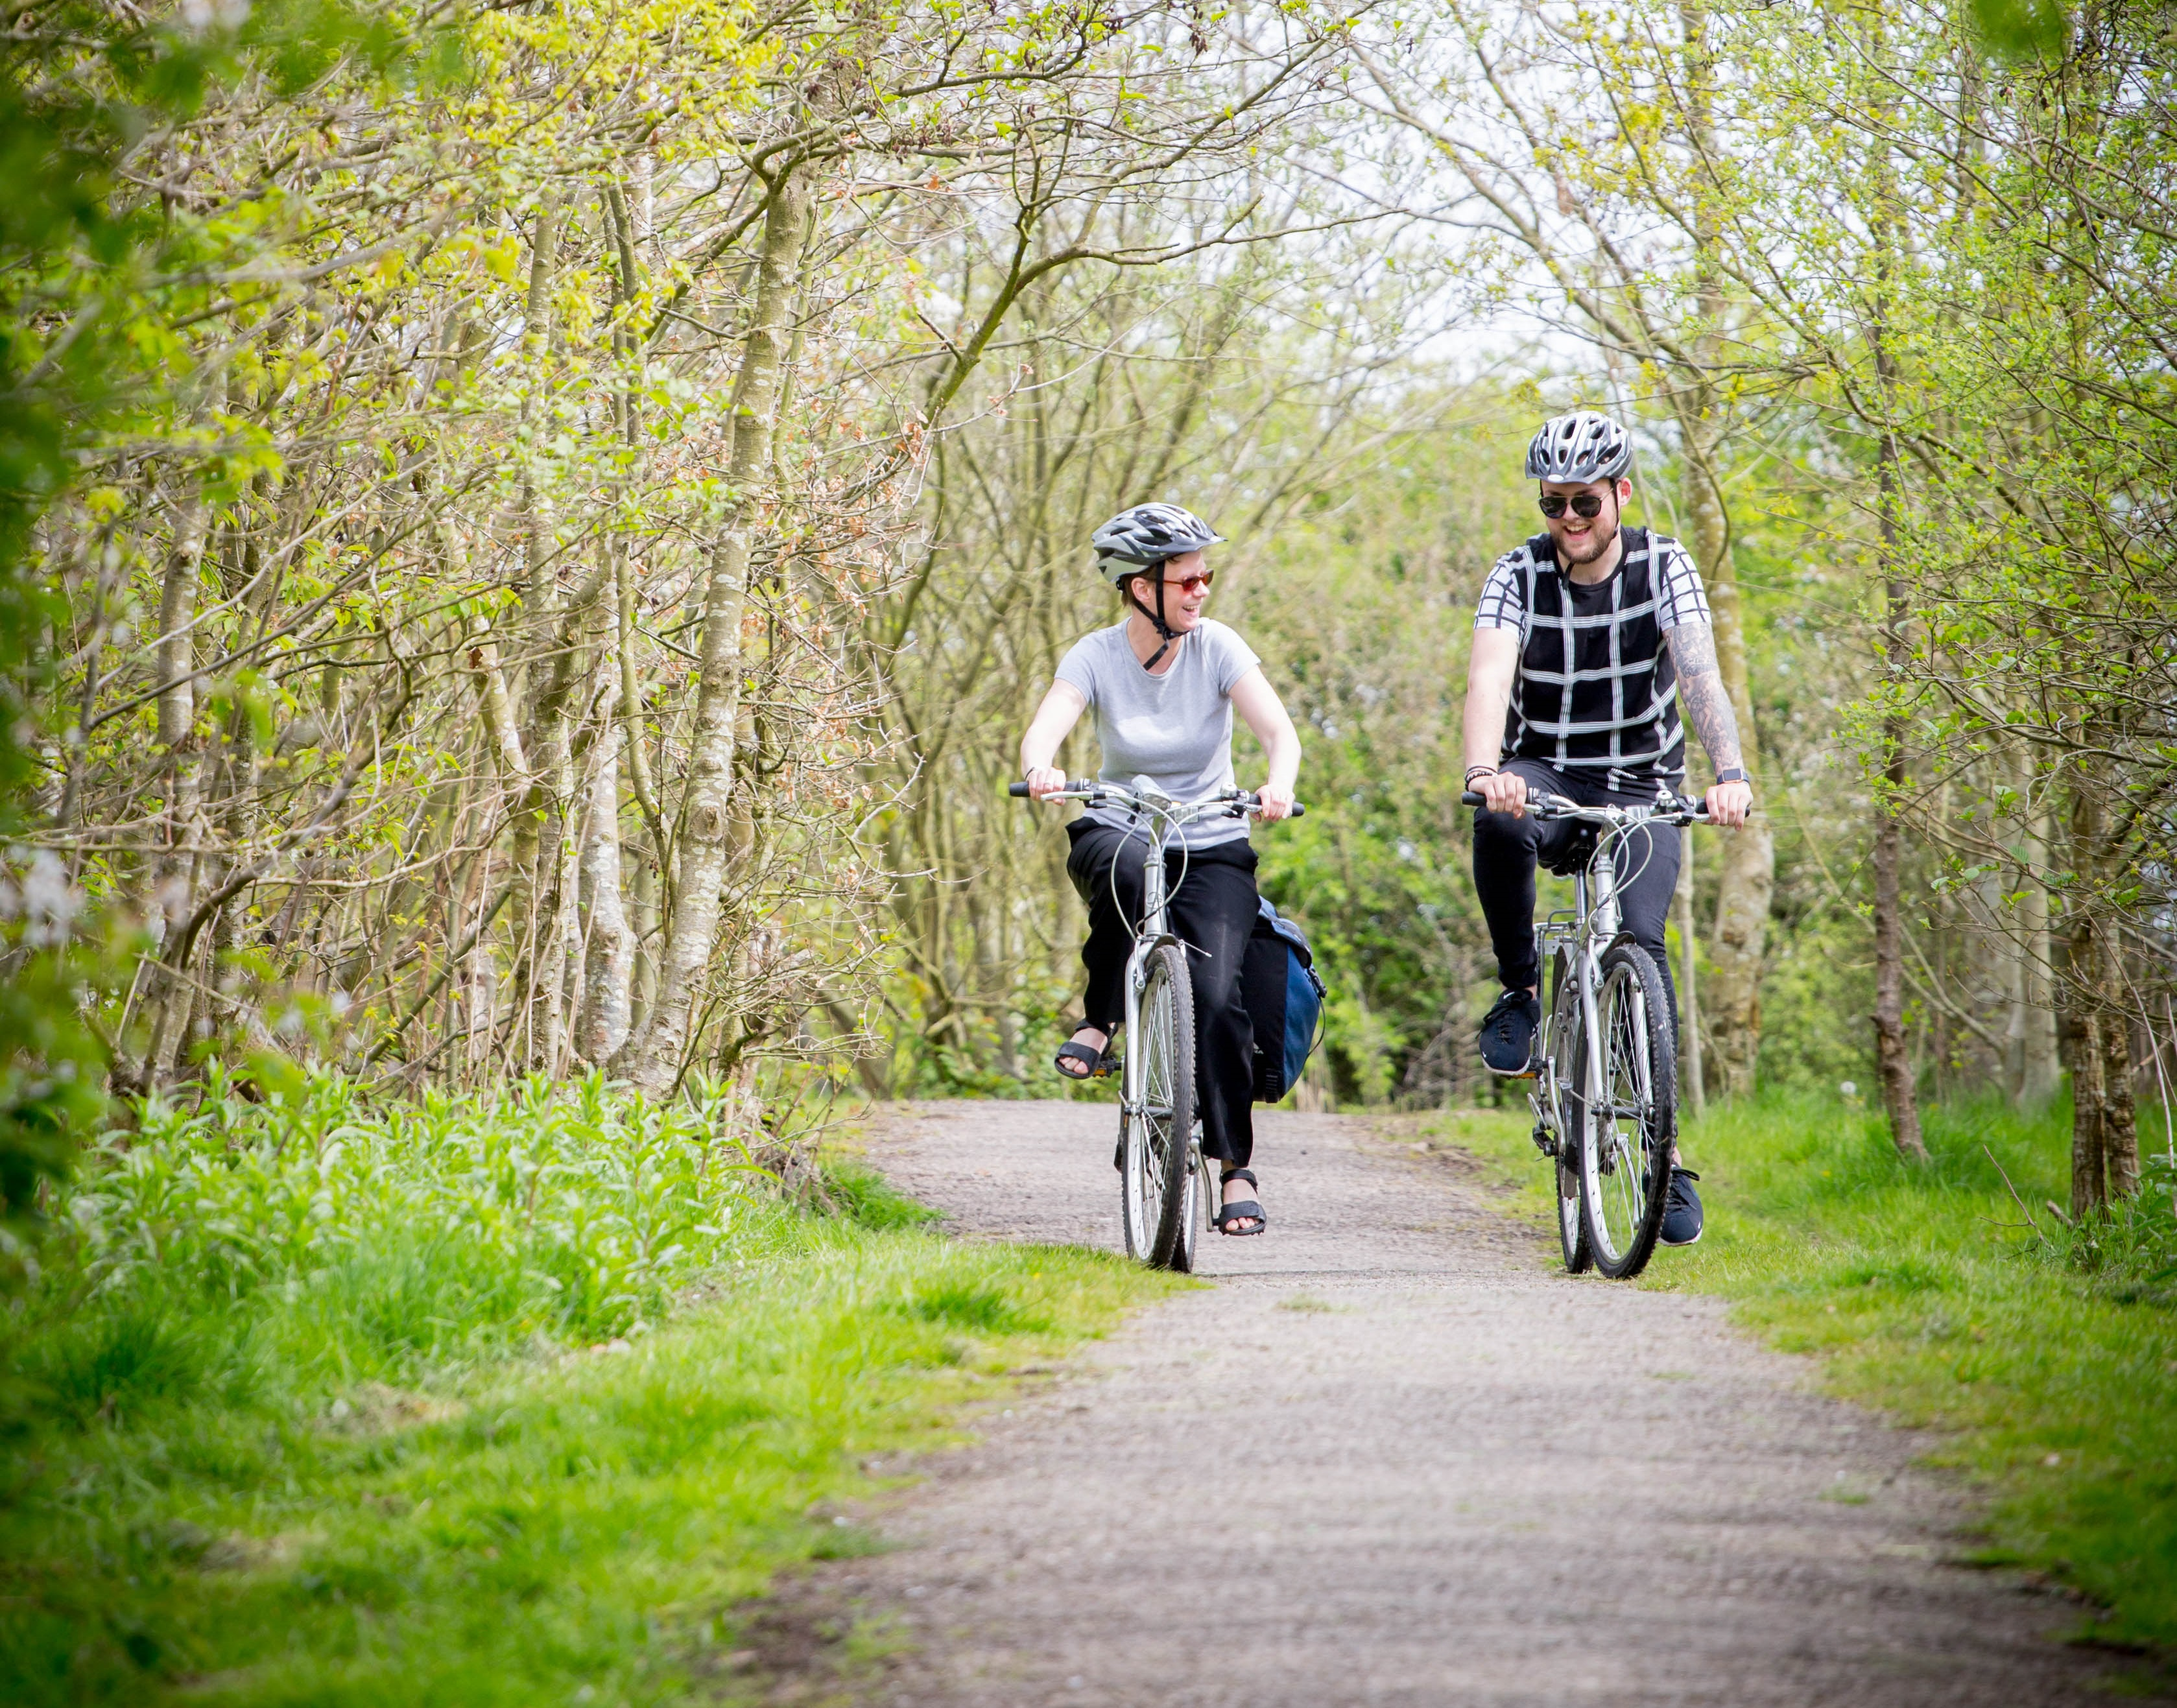 , Funding secured to improve borough's walking and cycling infrastructure, Skem News - The Top Source for Skelmersdale News